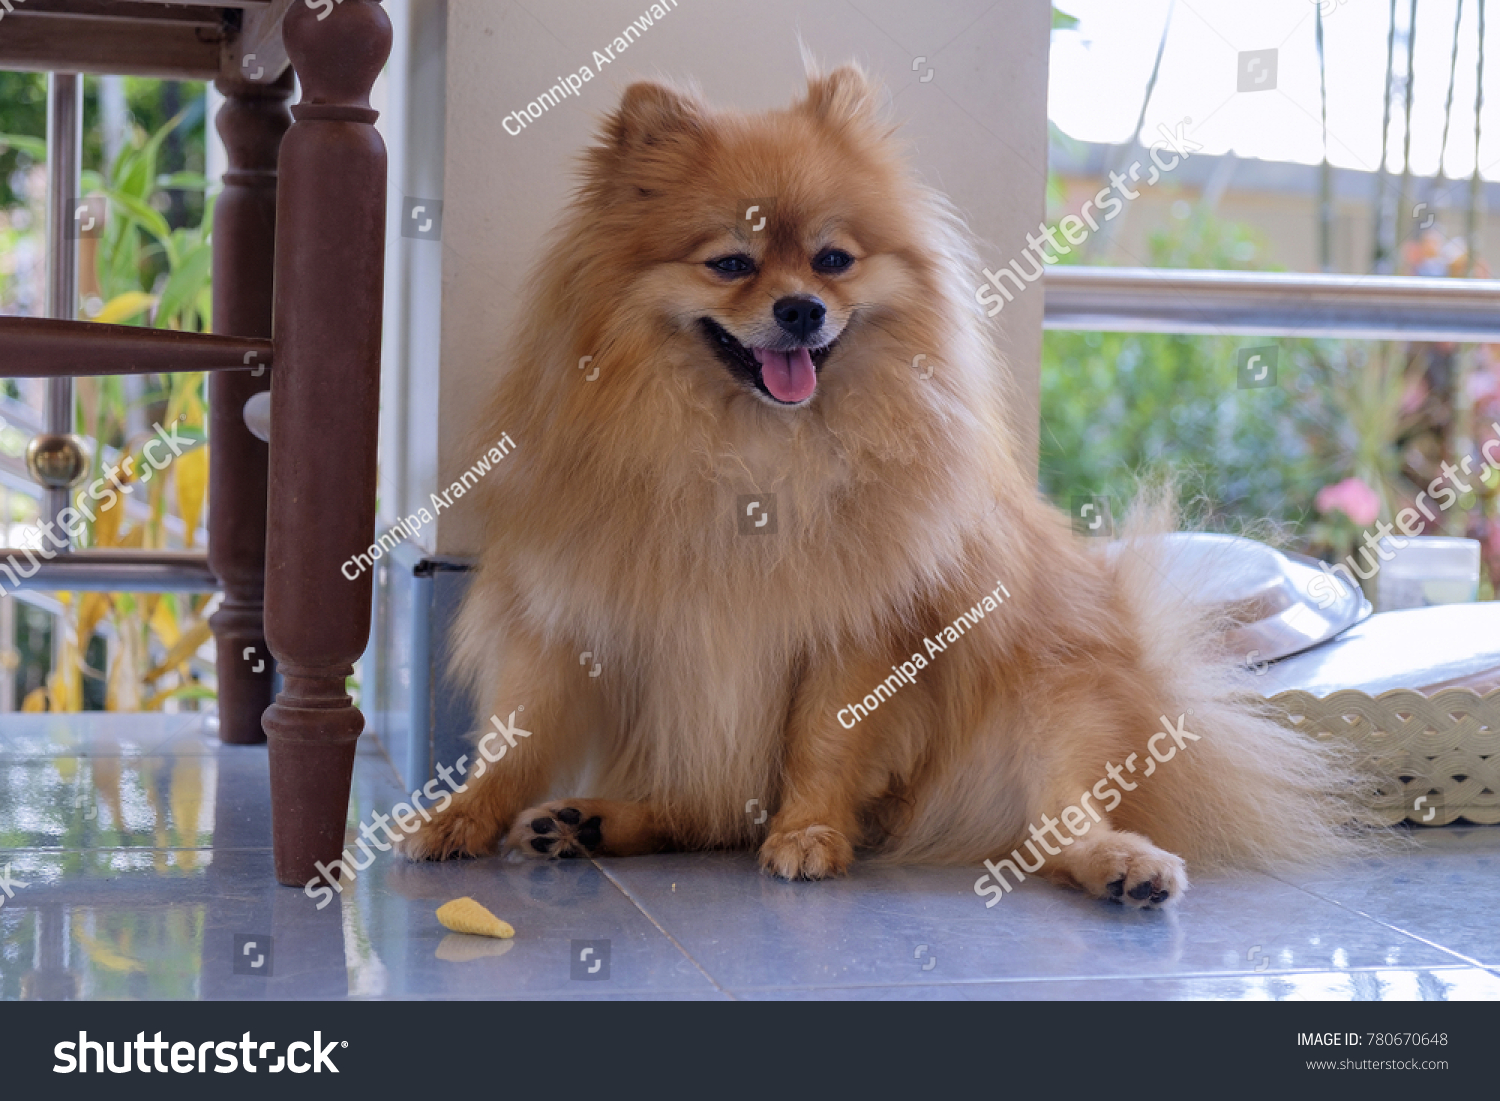 Cute Pomeranian Dog Brown Color Stock Photo Edit Now 780670648